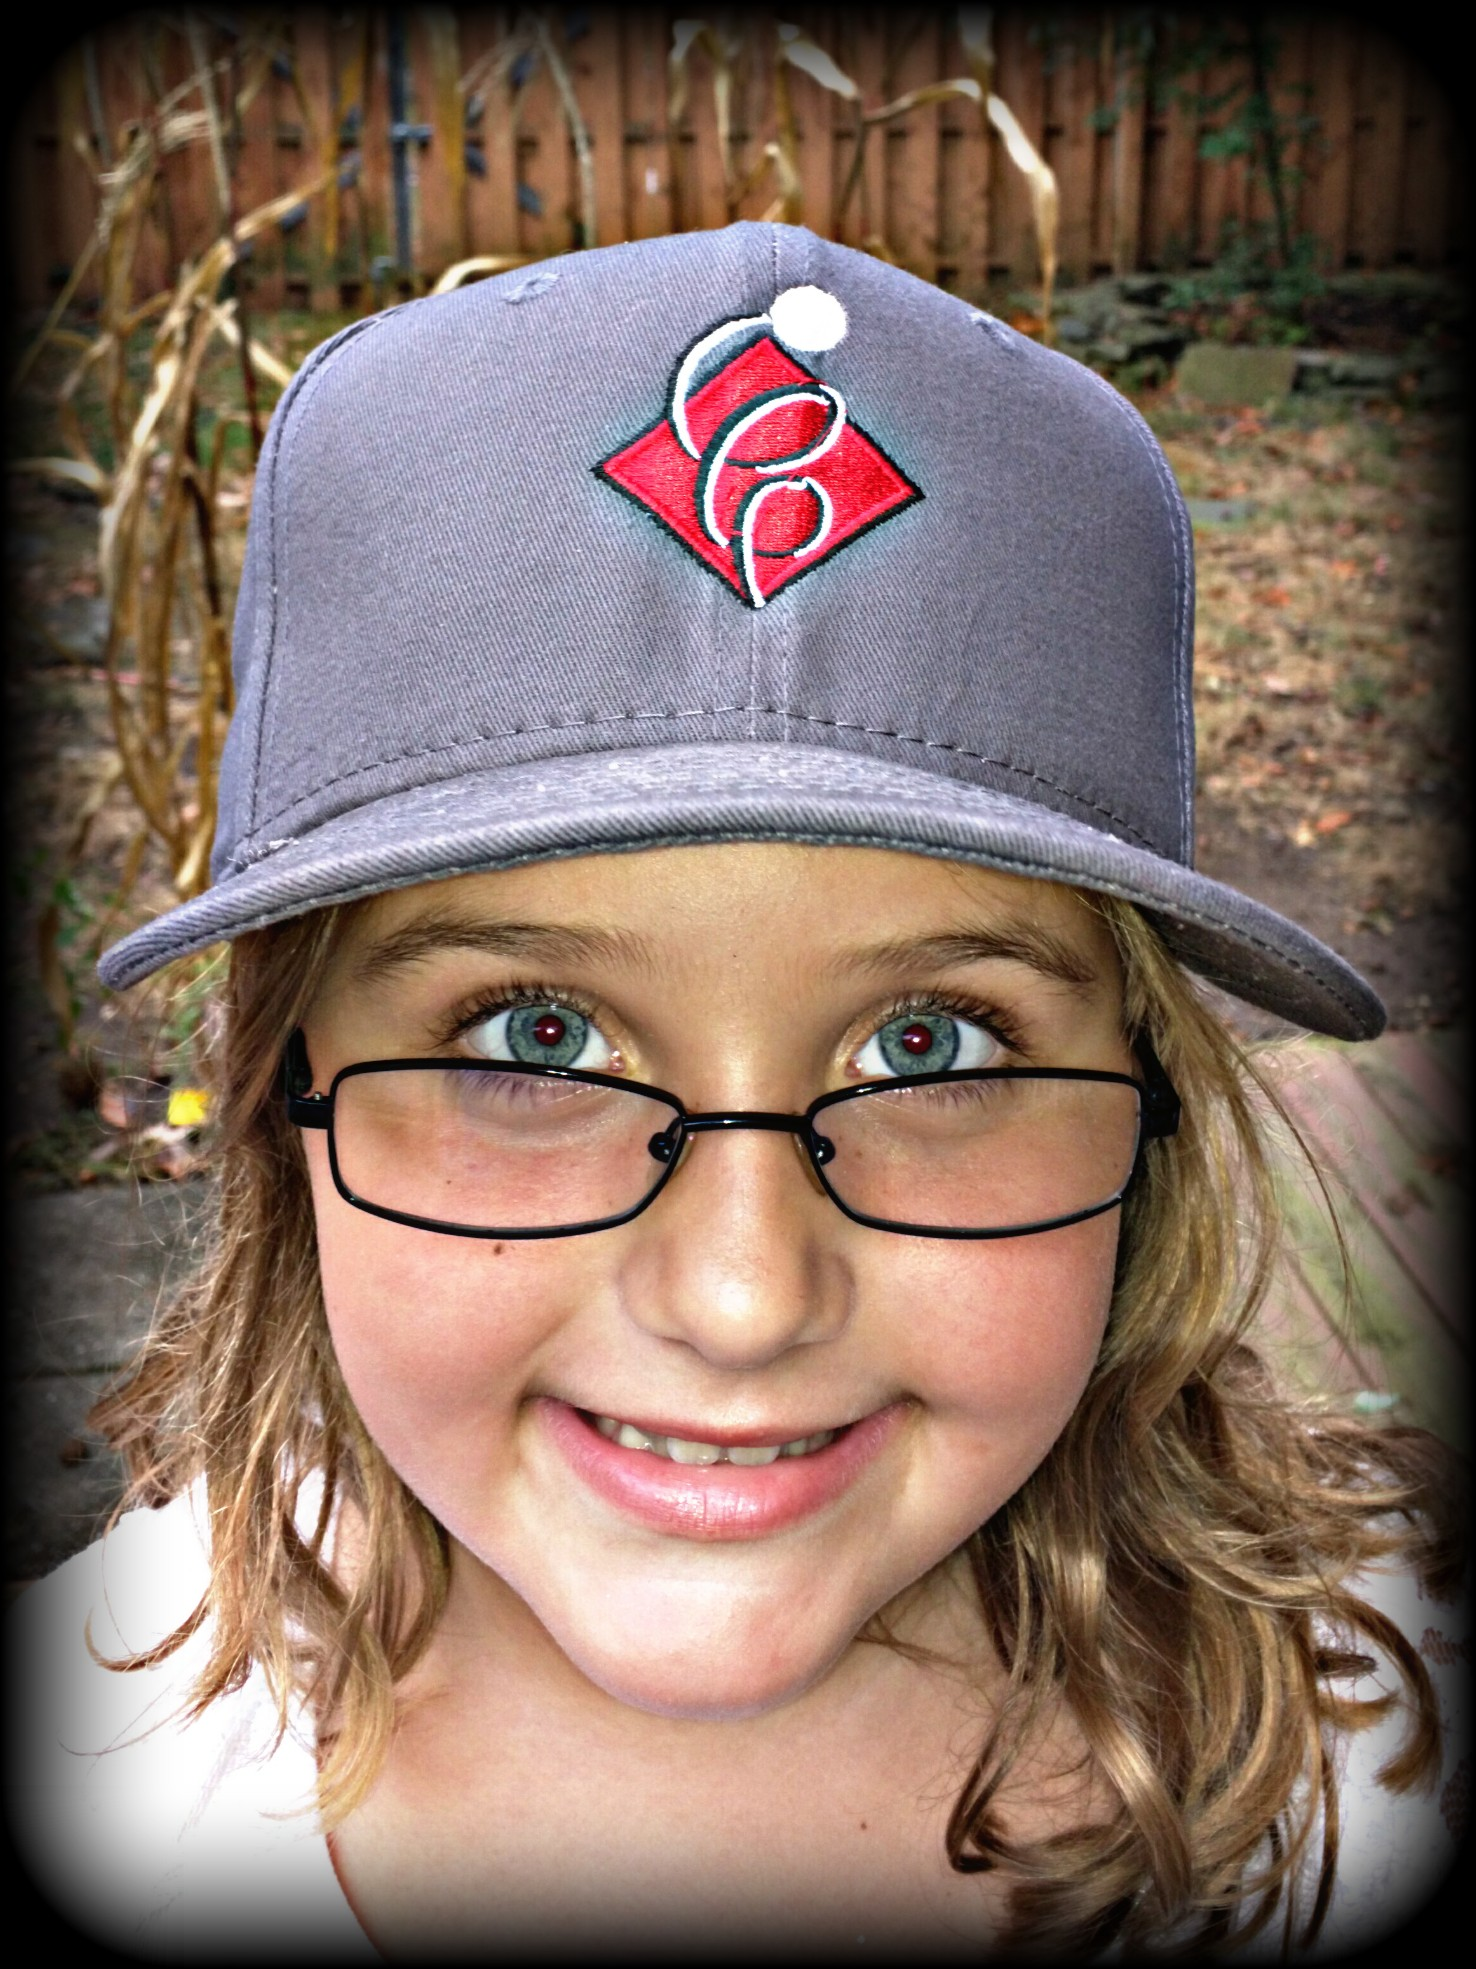 Catie's Bubbles Branded New Era 9FIFTY Snapback